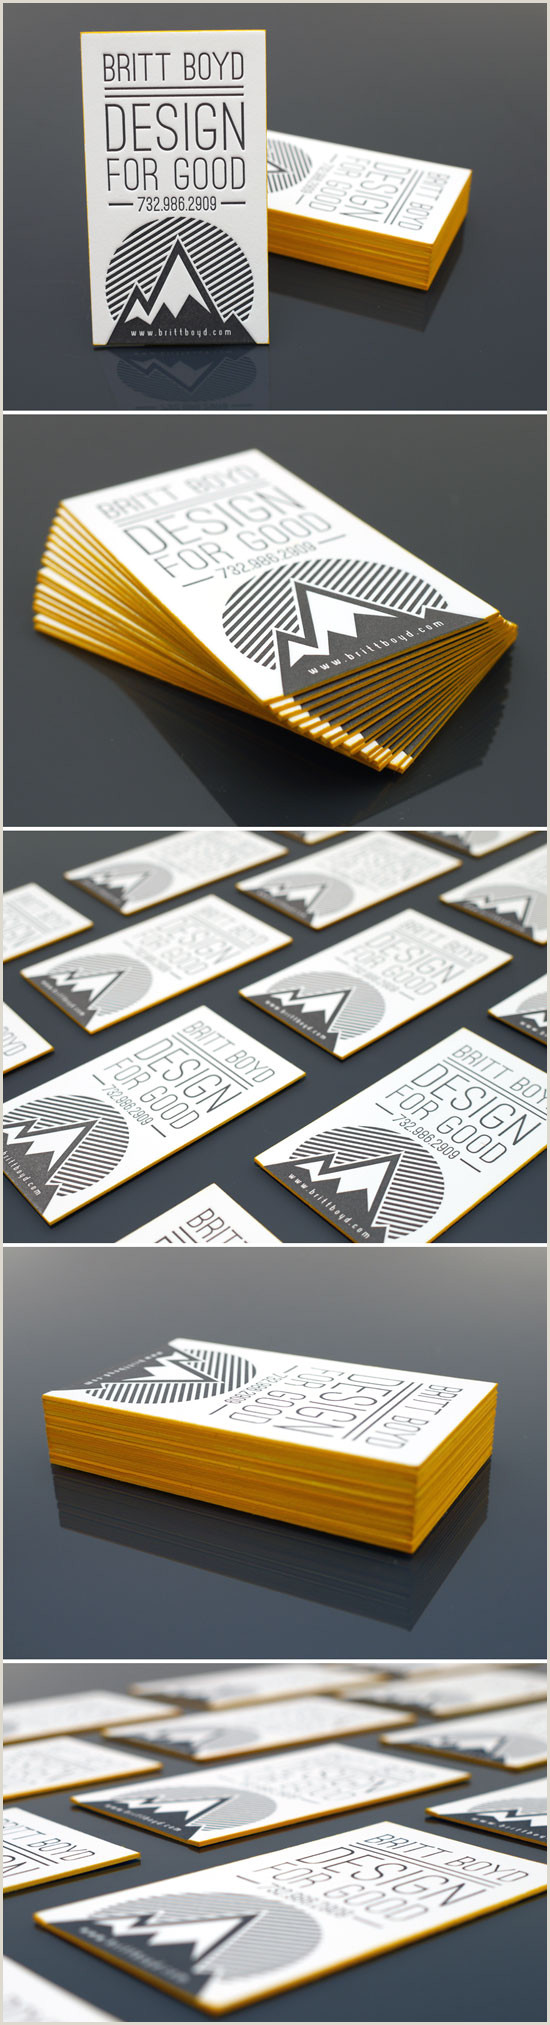 What Are The Best Business Cards? Best Business Card Designs 300 Cool Examples And Ideas